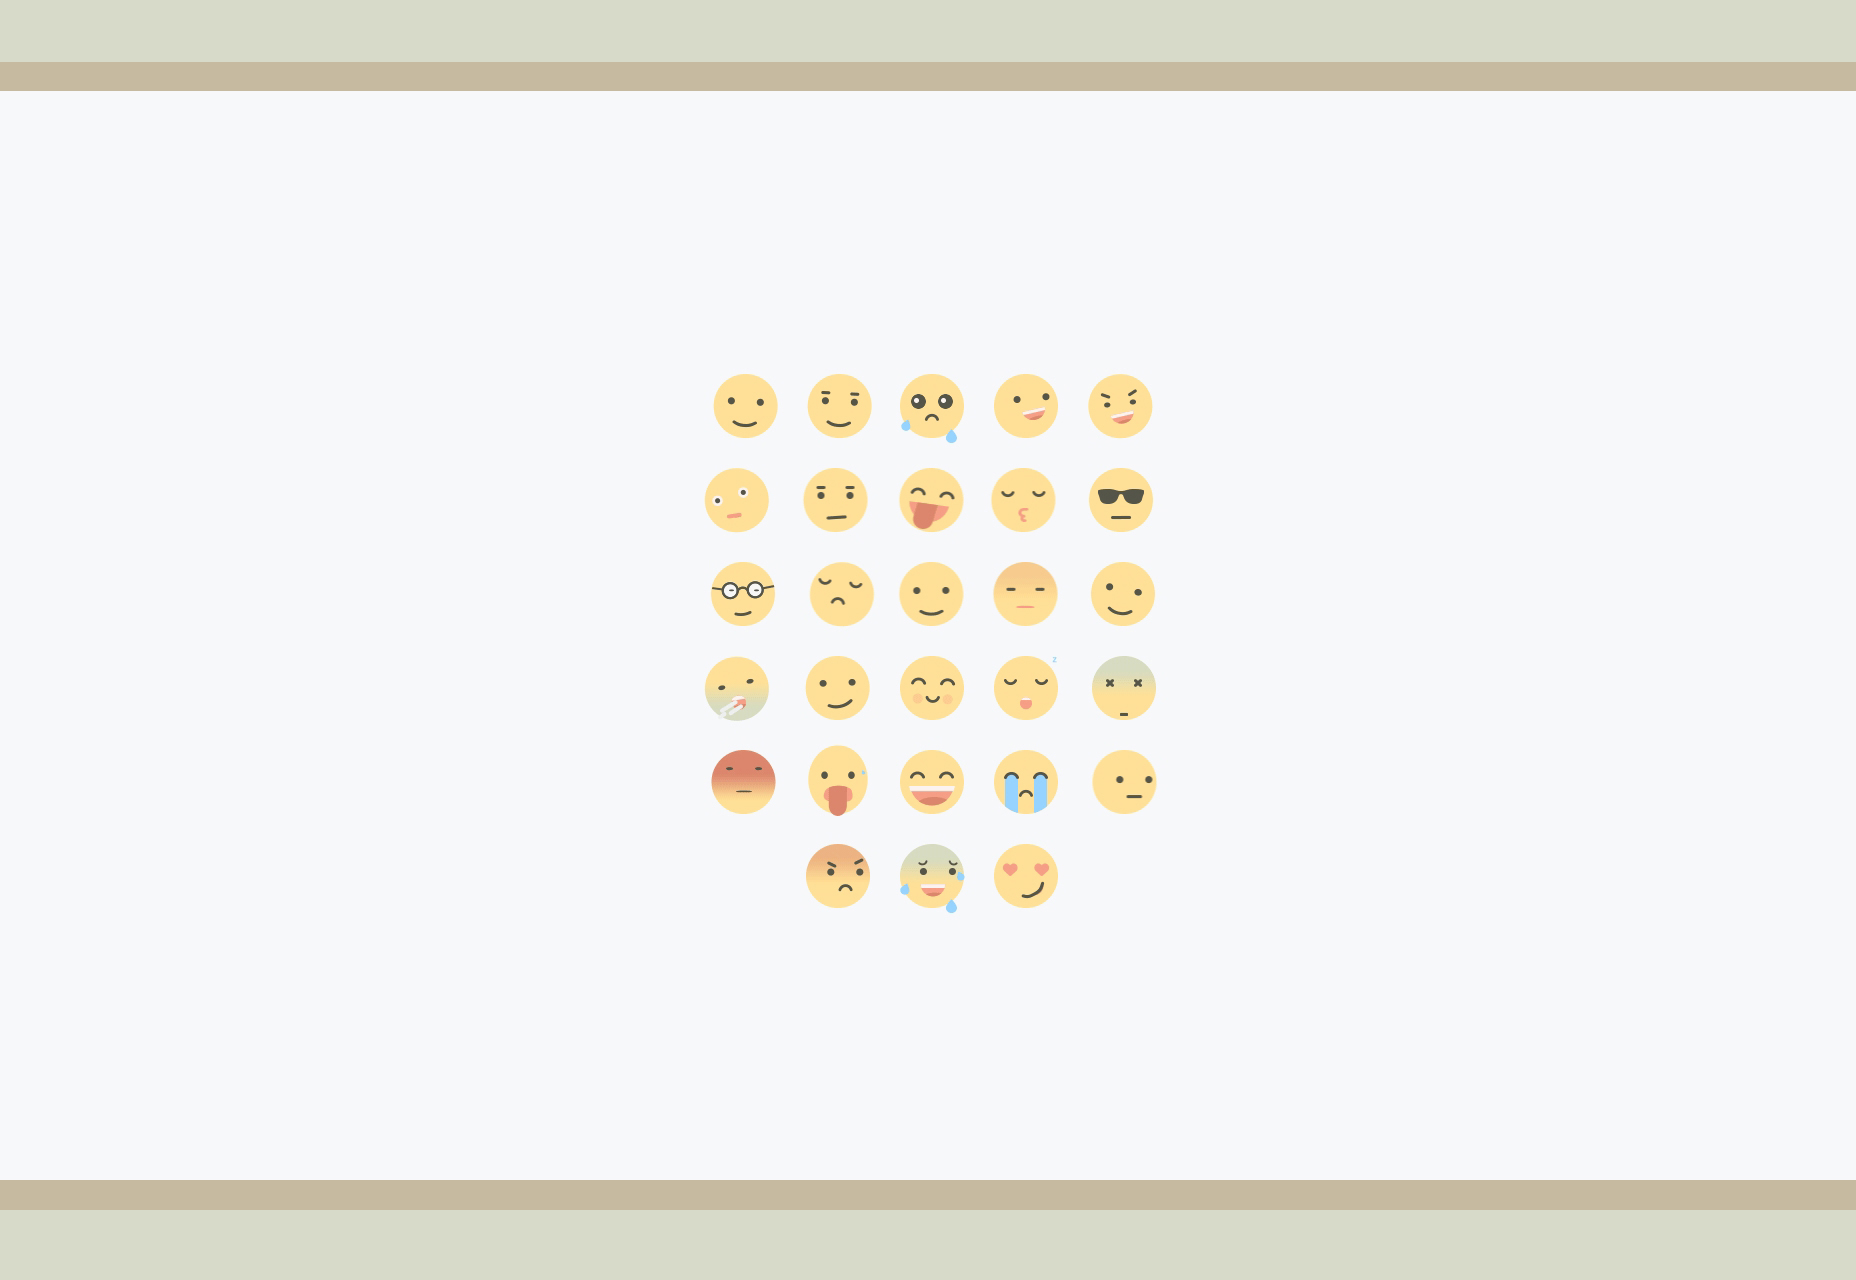 adobe-after-effects-animated-flat-emojis-